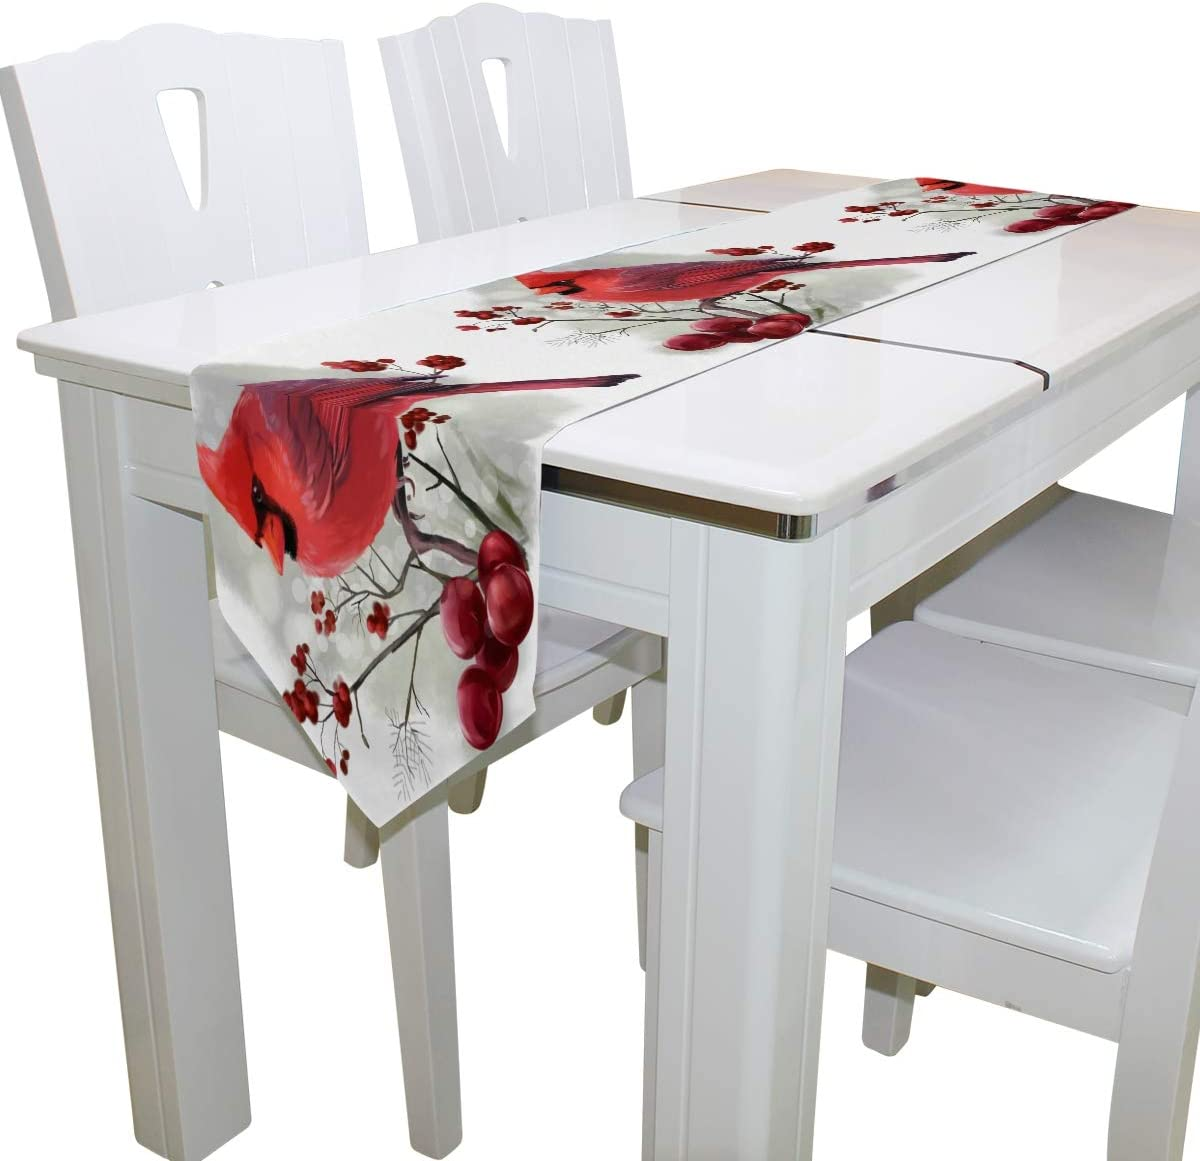 Double-Sided Panda Animal Winter Bird Cardinal Table Runner 13 x 70 Inches Long,Table Cloth Runner for Wedding Party Holiday Kitchen Dining Home Everyday Deco